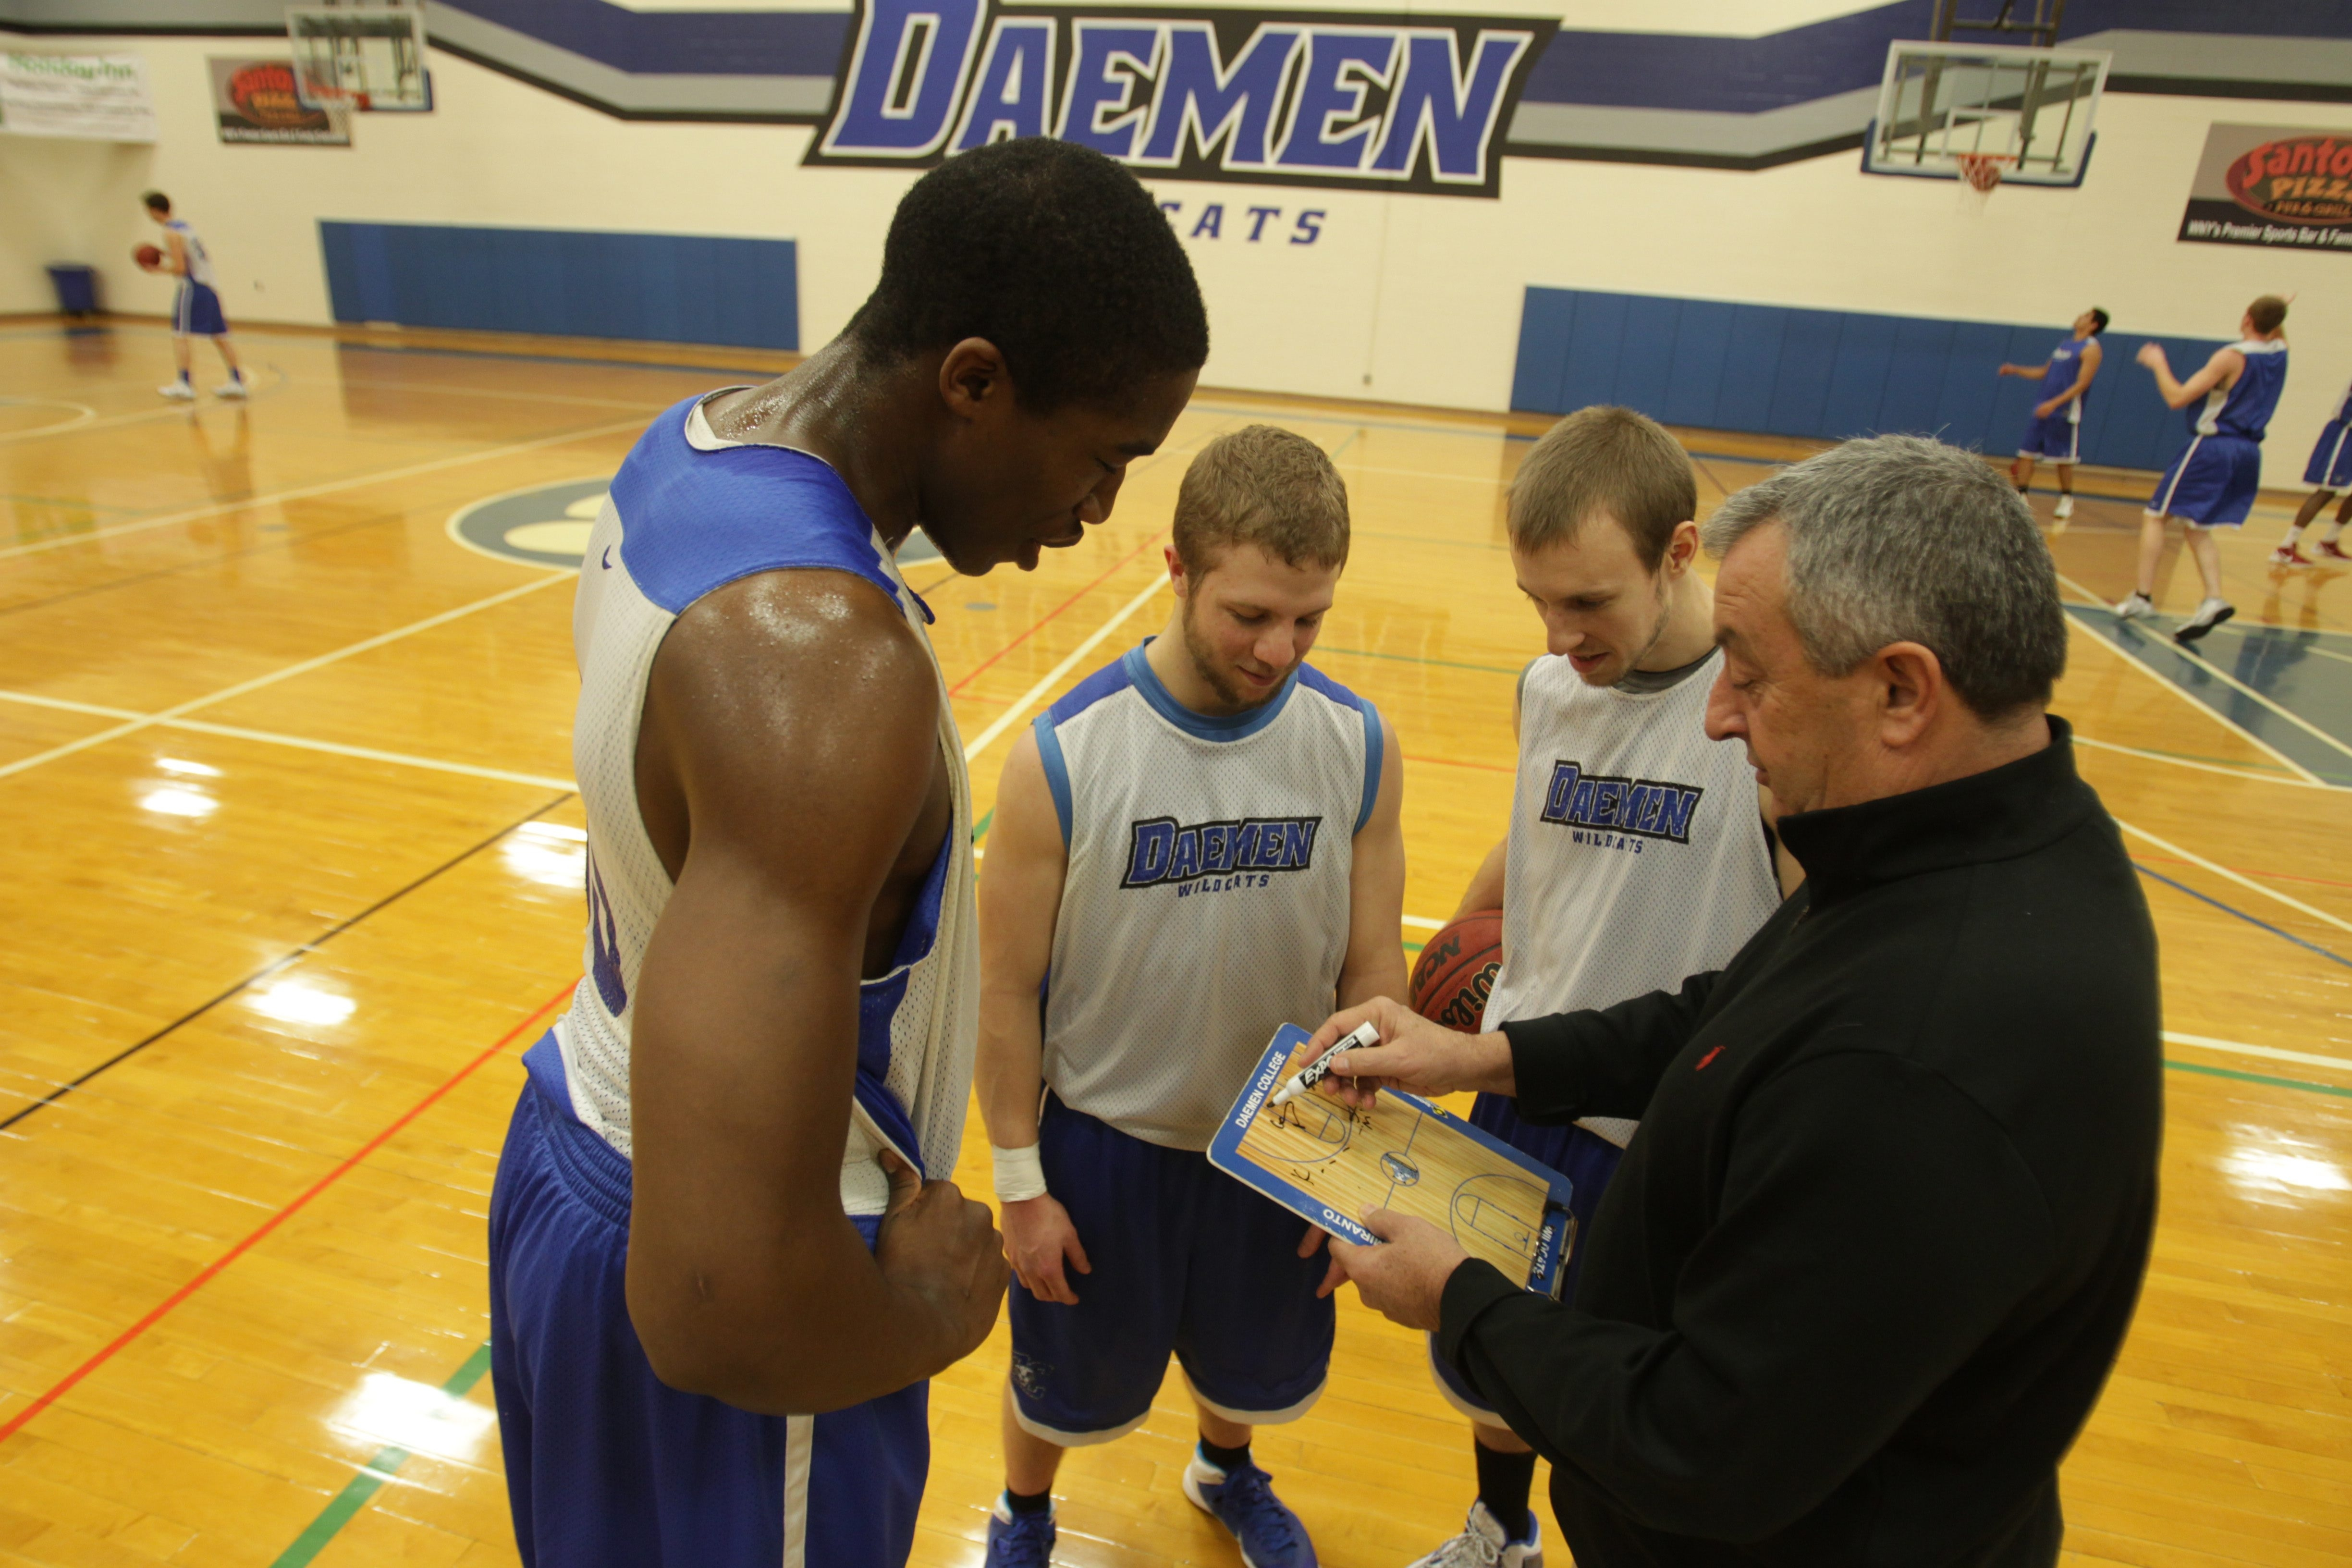 From left, key players Gerald Beverly, Casey Sheehan and Mark Coppola get pointers from Coach Don Silveri.